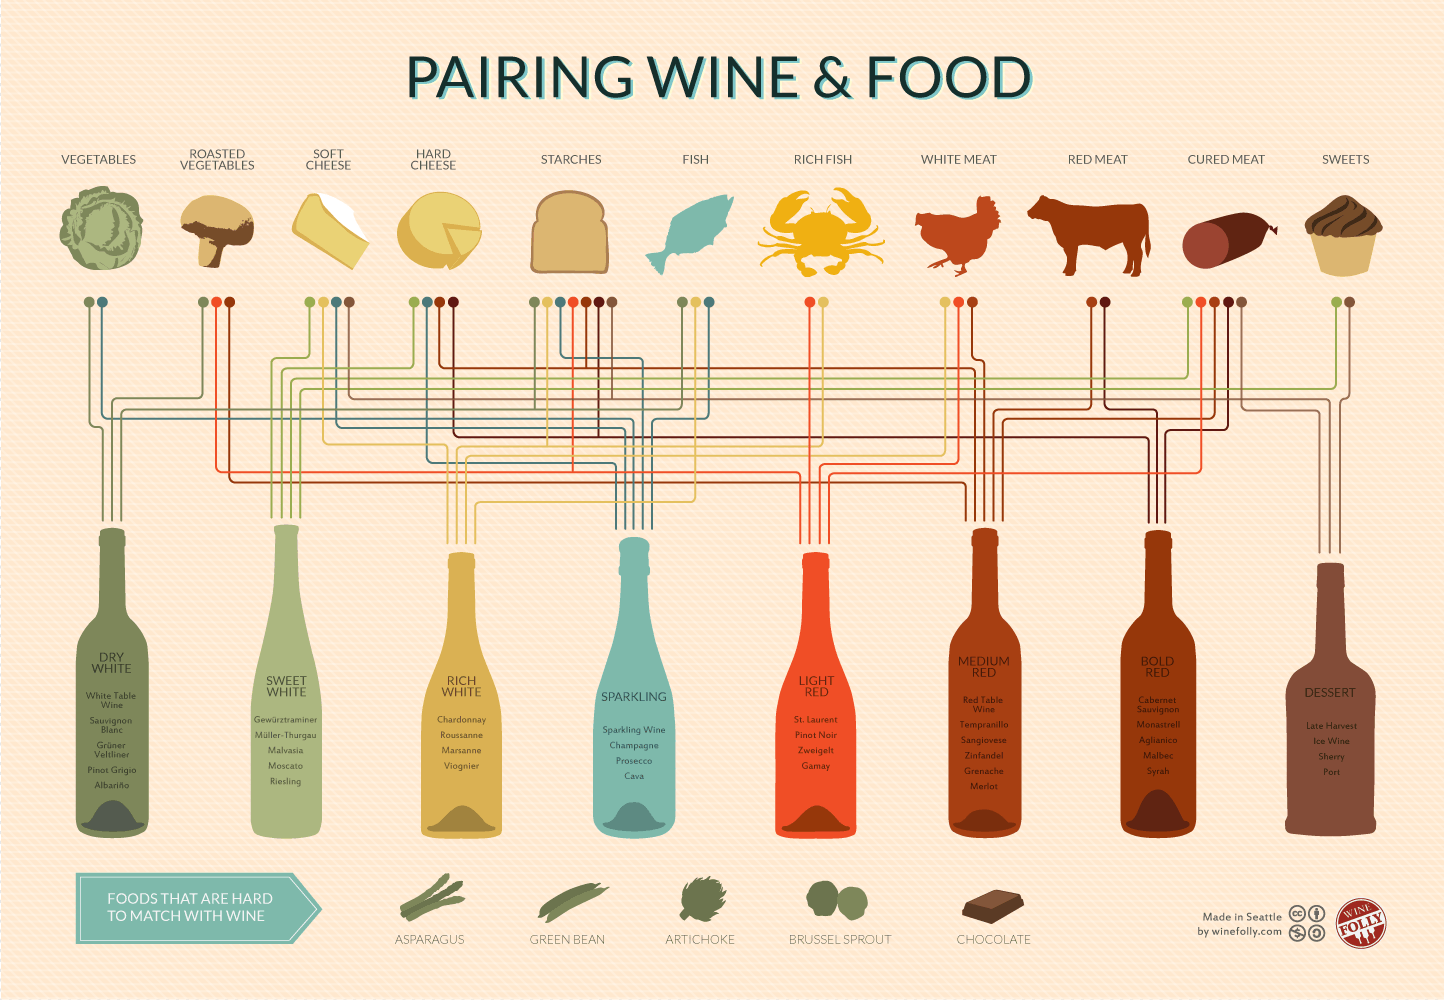 A visual map to pair the right food type with the right wine